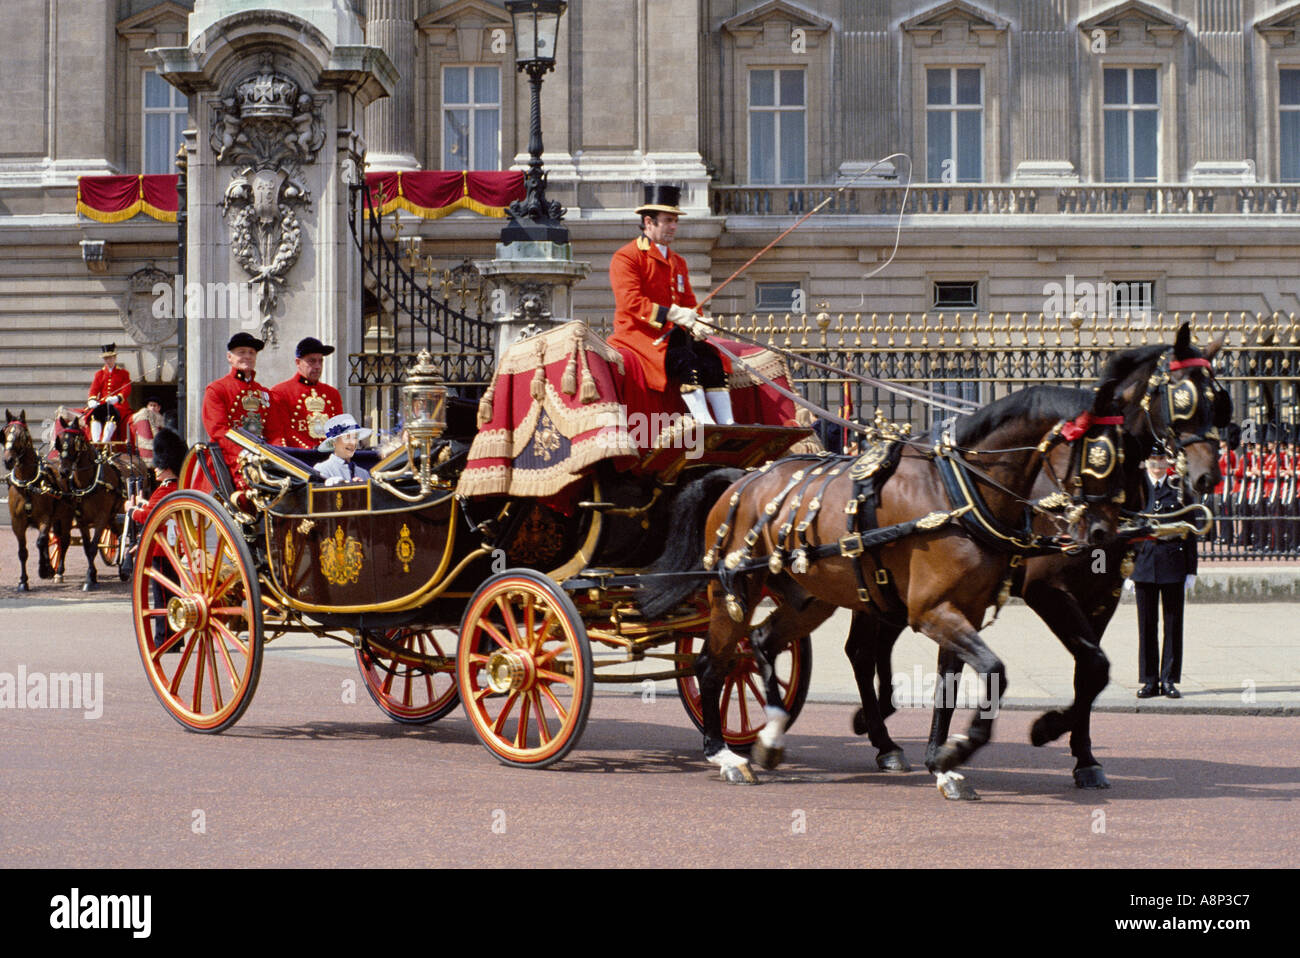 Royal carriage and Queen Elizabeth II leaving Buckingham Palace - Stock Image